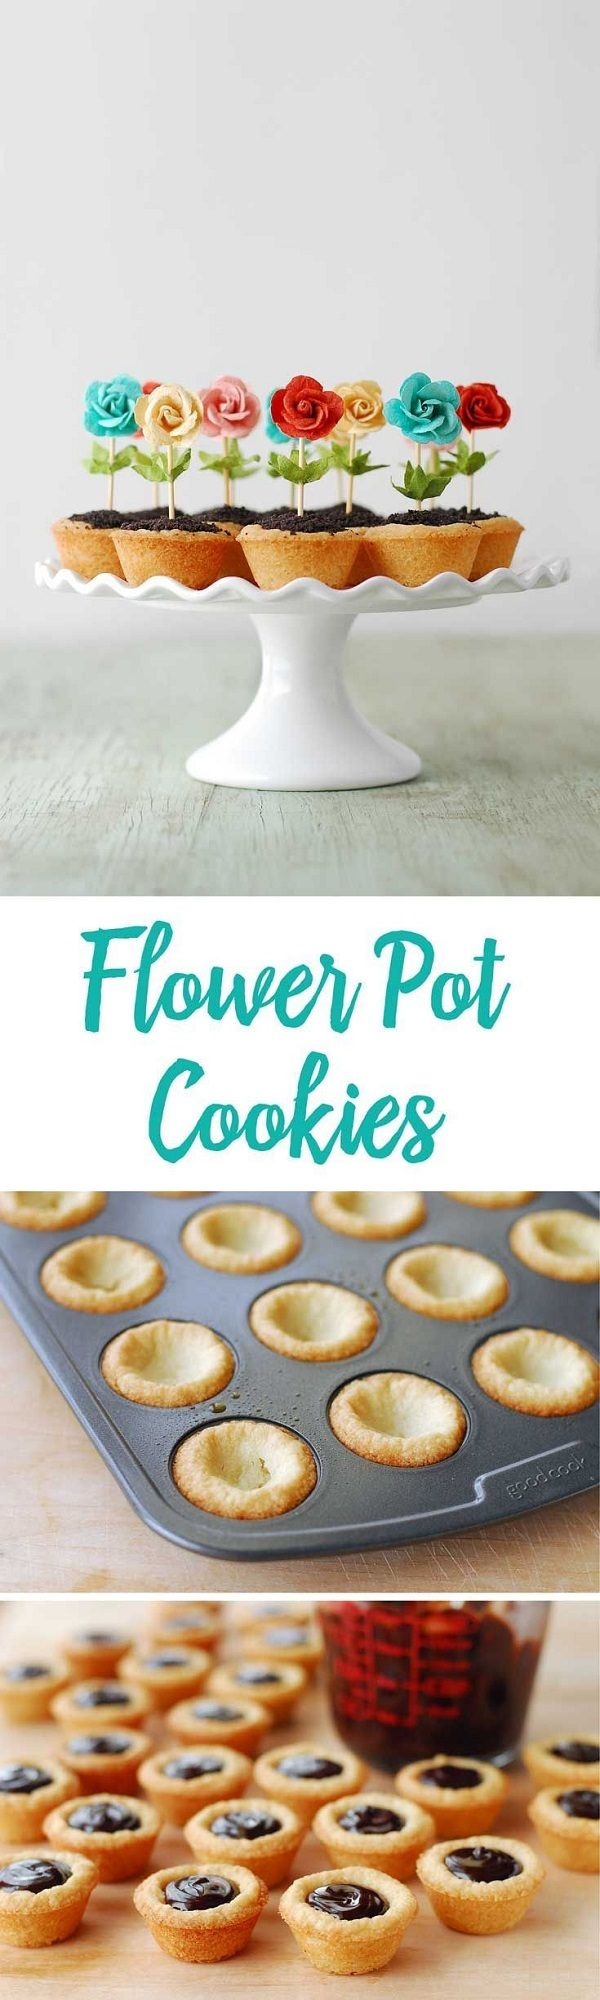 These flower pot cookies look unique and beautiful, not only they are perfect in appearance but taste good too. See the recipe!